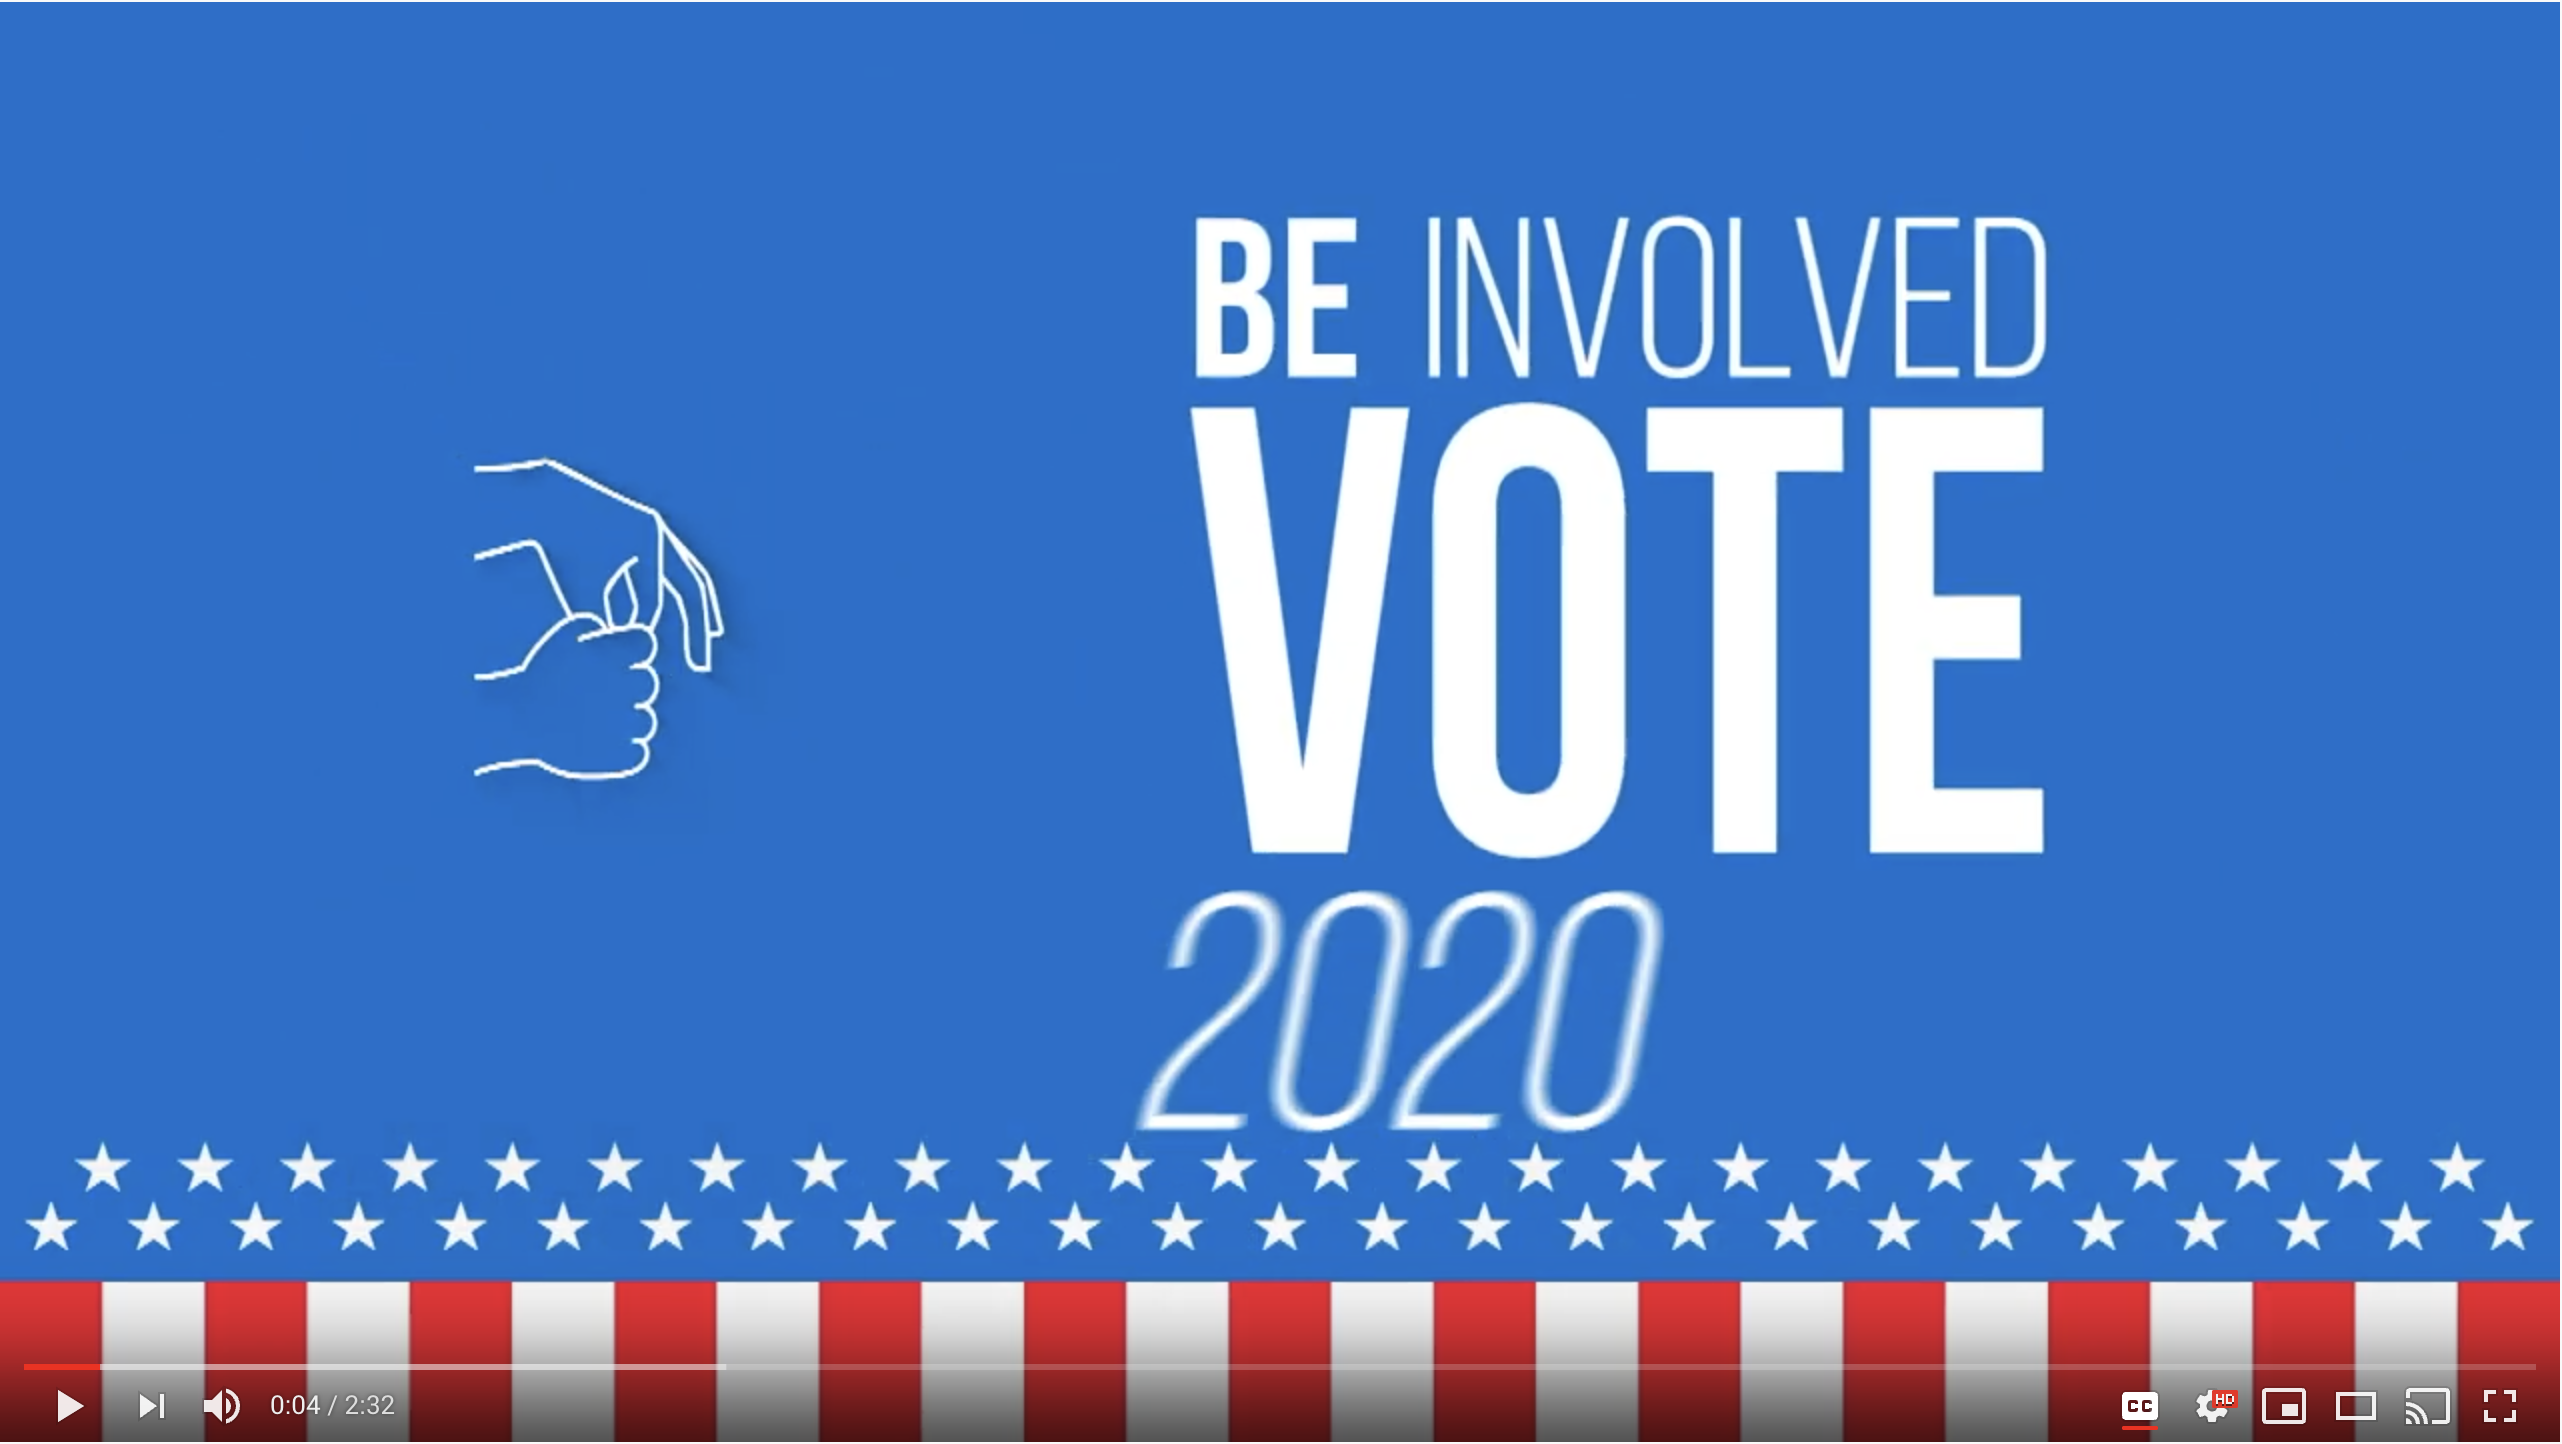 """Background: blue; 2 rows of stars across the screenshot at the bottom; below the stars, vertical red and white strips; on the left ASL signing """"vote""""; white text on the left: Be Involved VOTE 2020"""